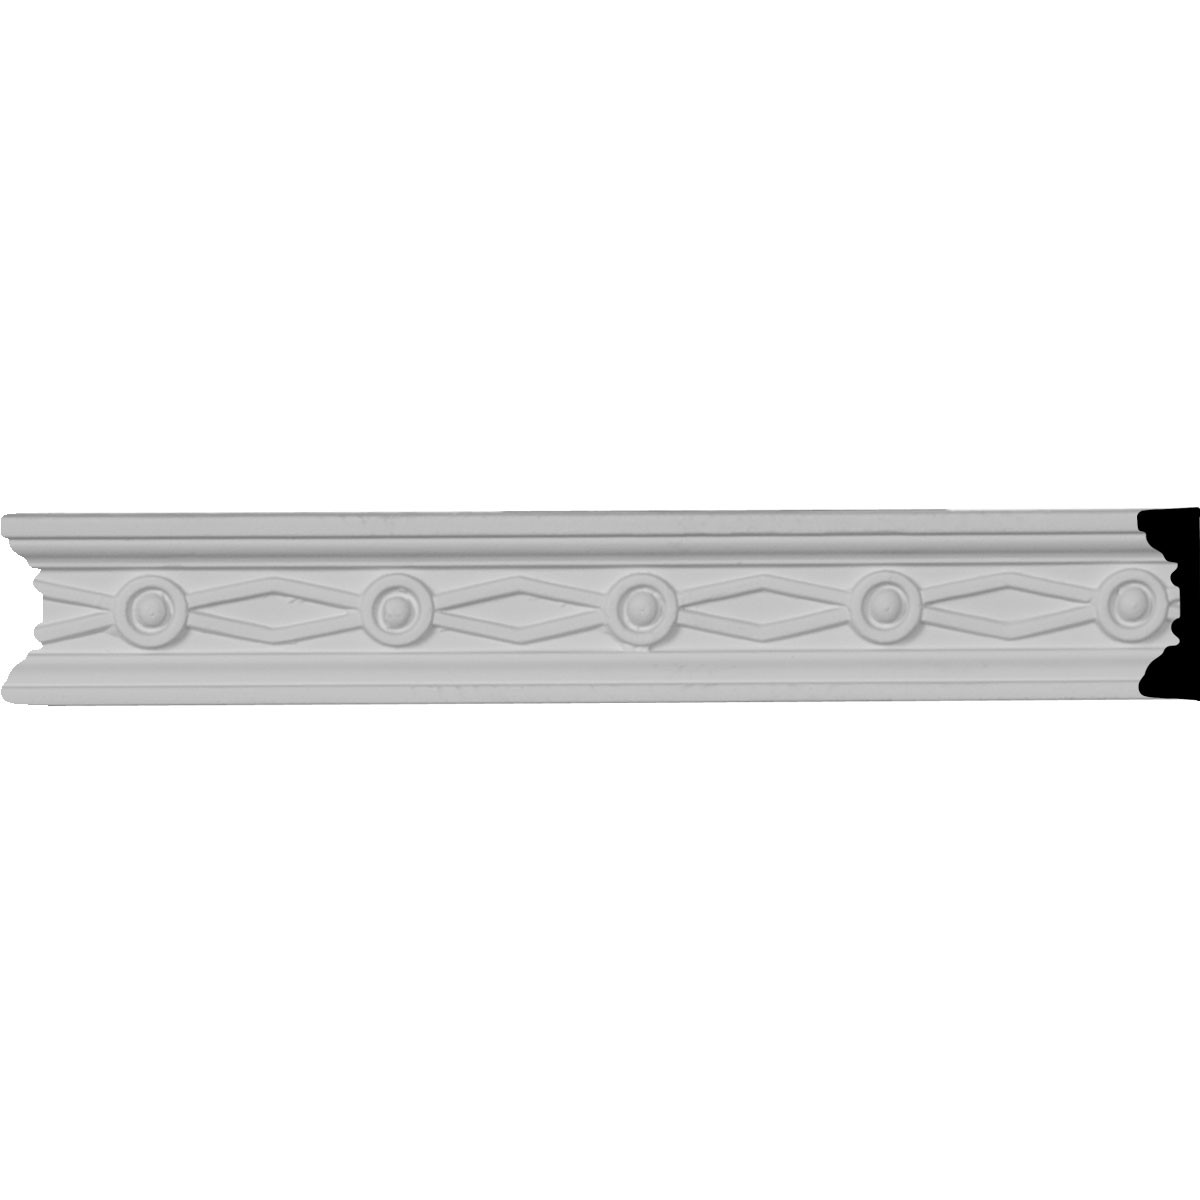 "EM-CHA01X00FE - 1 1/2""H x 1/2""P x 96""L, (2"" Repeat), Federal Chair Rail"